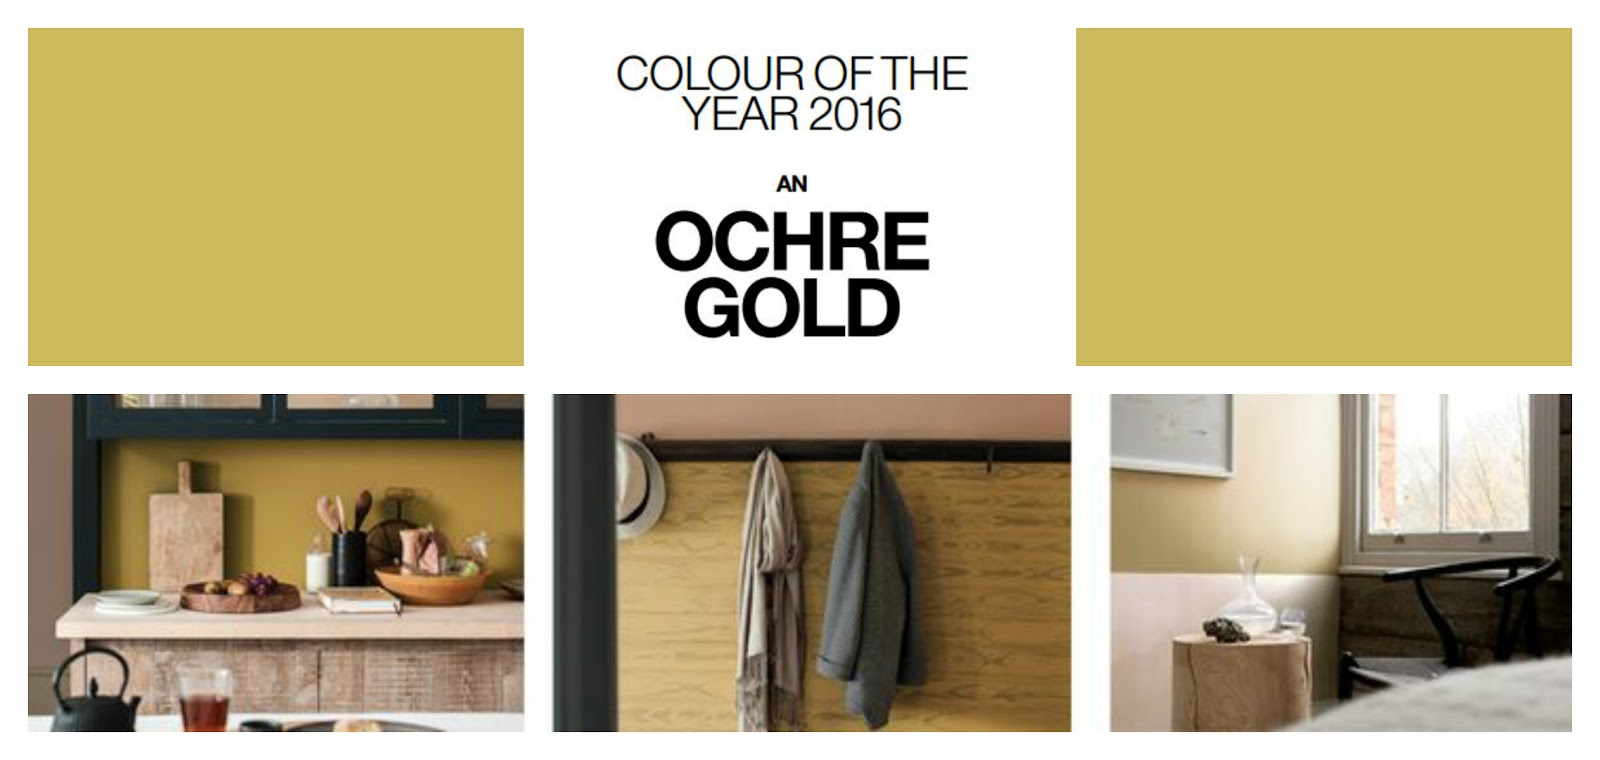 Colour futures 2016: Benvenuto Ochre Gold